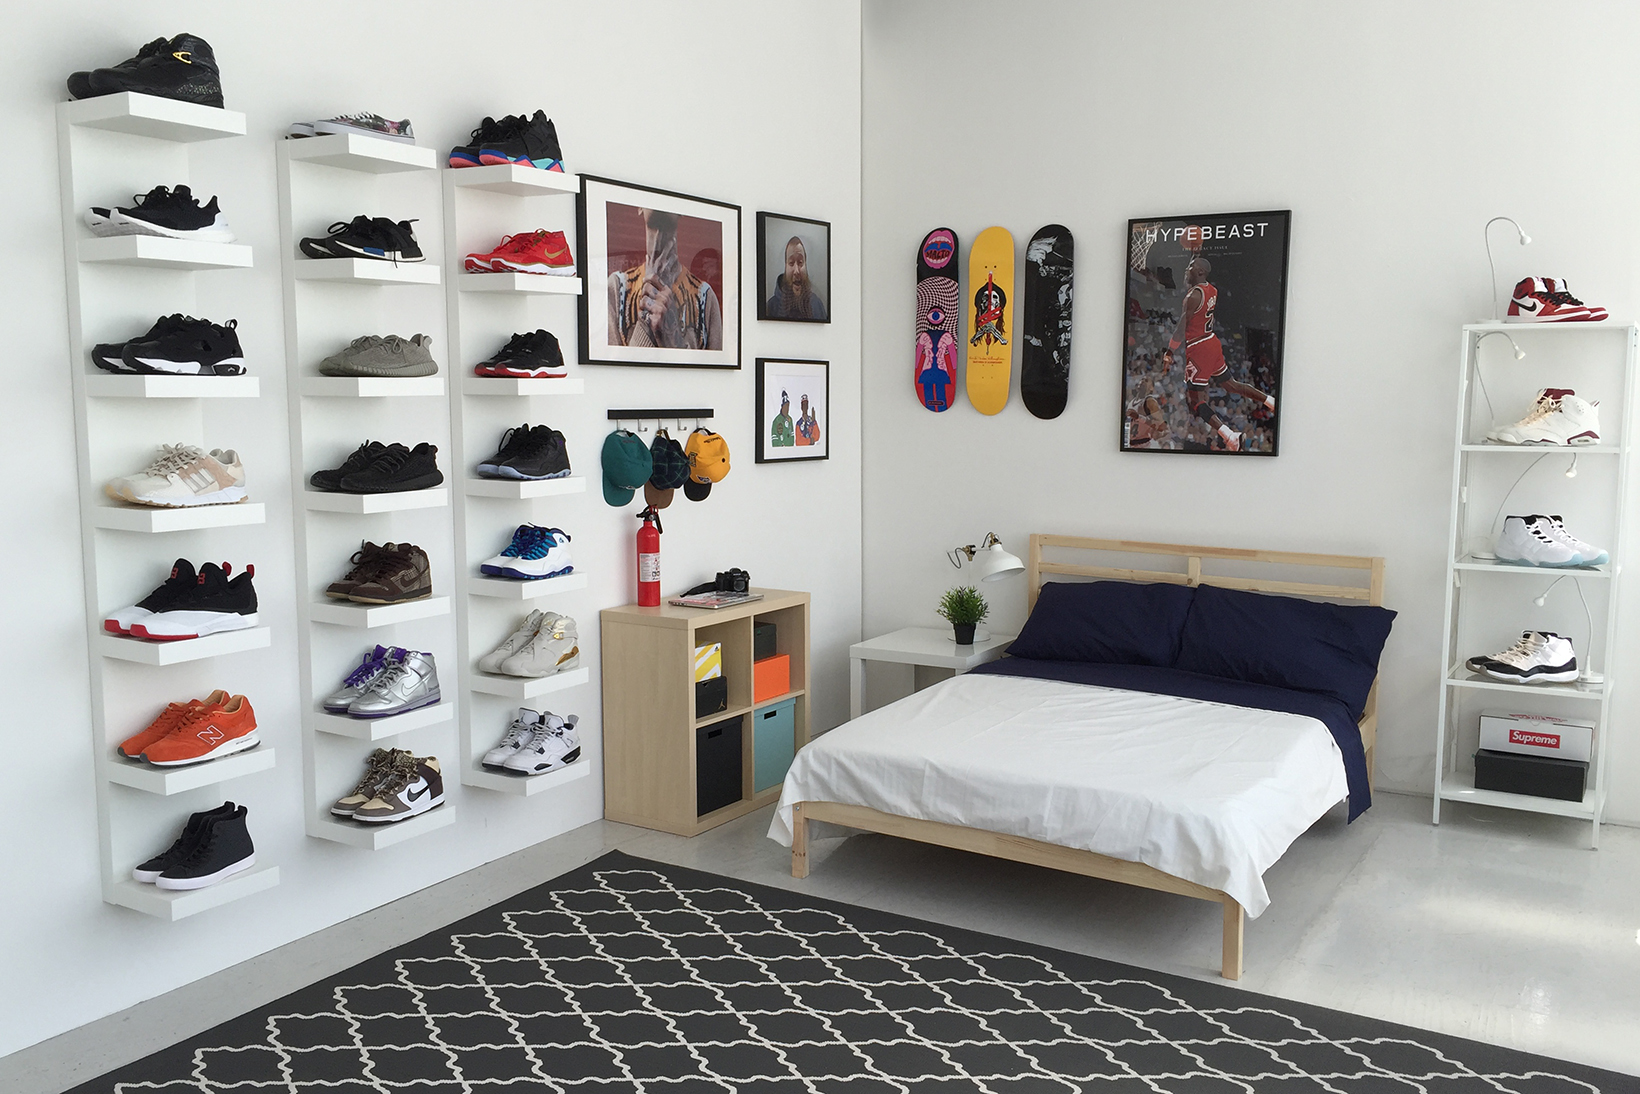 ikea and hypebeast design the ideal sneakerhead bedroom hypebeast. Black Bedroom Furniture Sets. Home Design Ideas